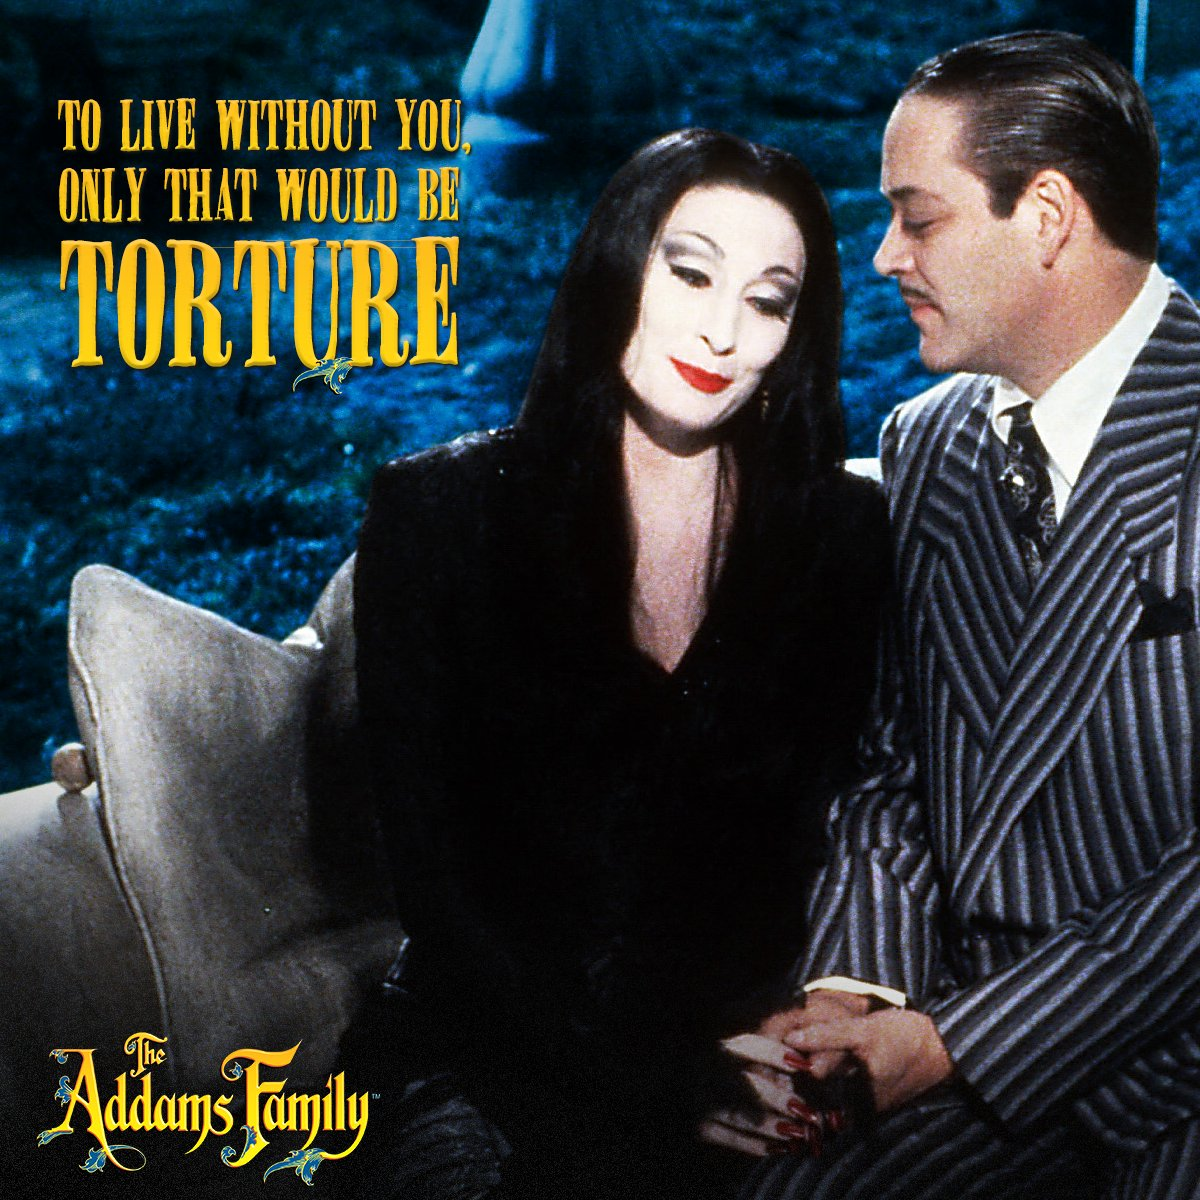 Celebrate Halloween with the Addams Family